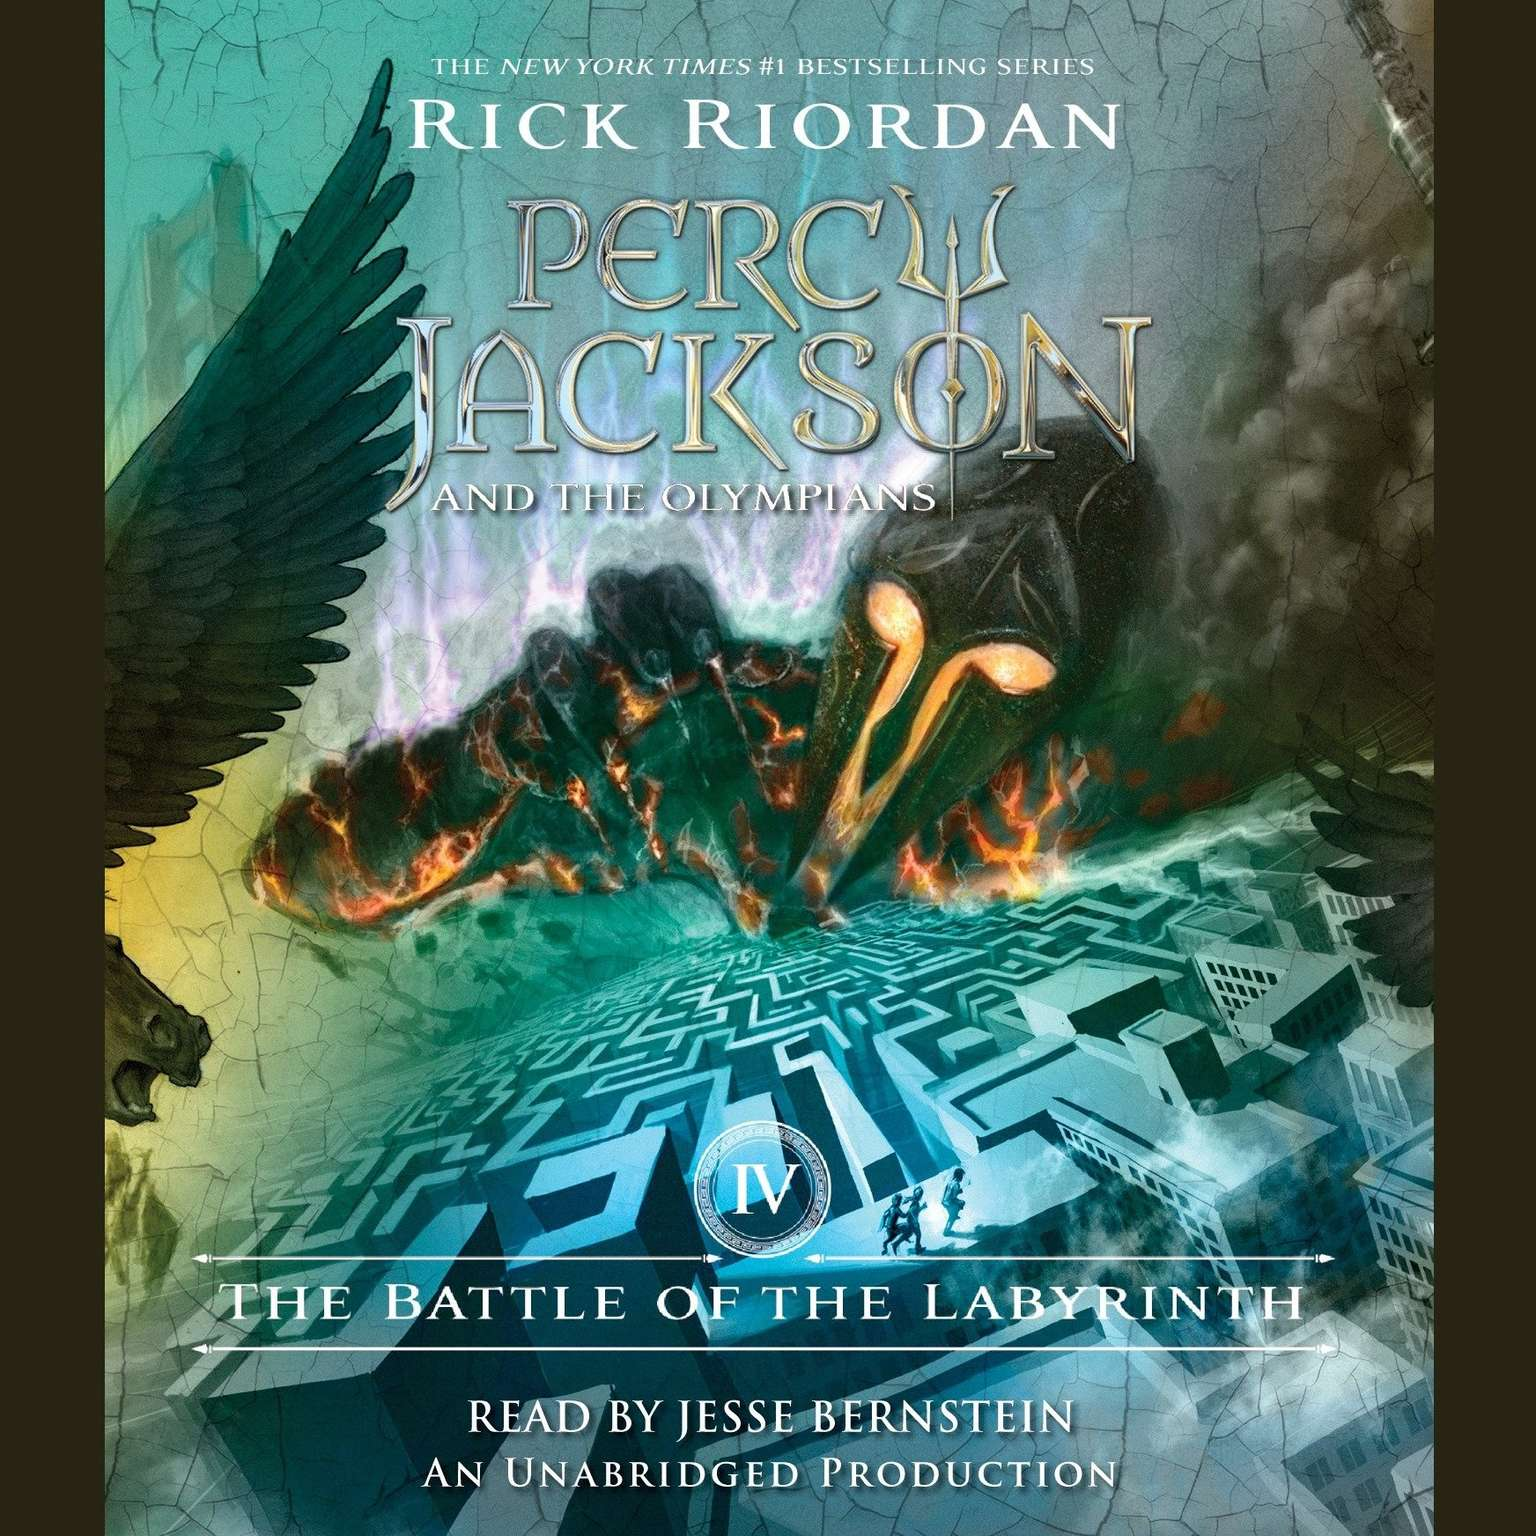 Printable The Battle of the Labyrinth: Percy Jackson and the Olympians, Book 4 Audiobook Cover Art